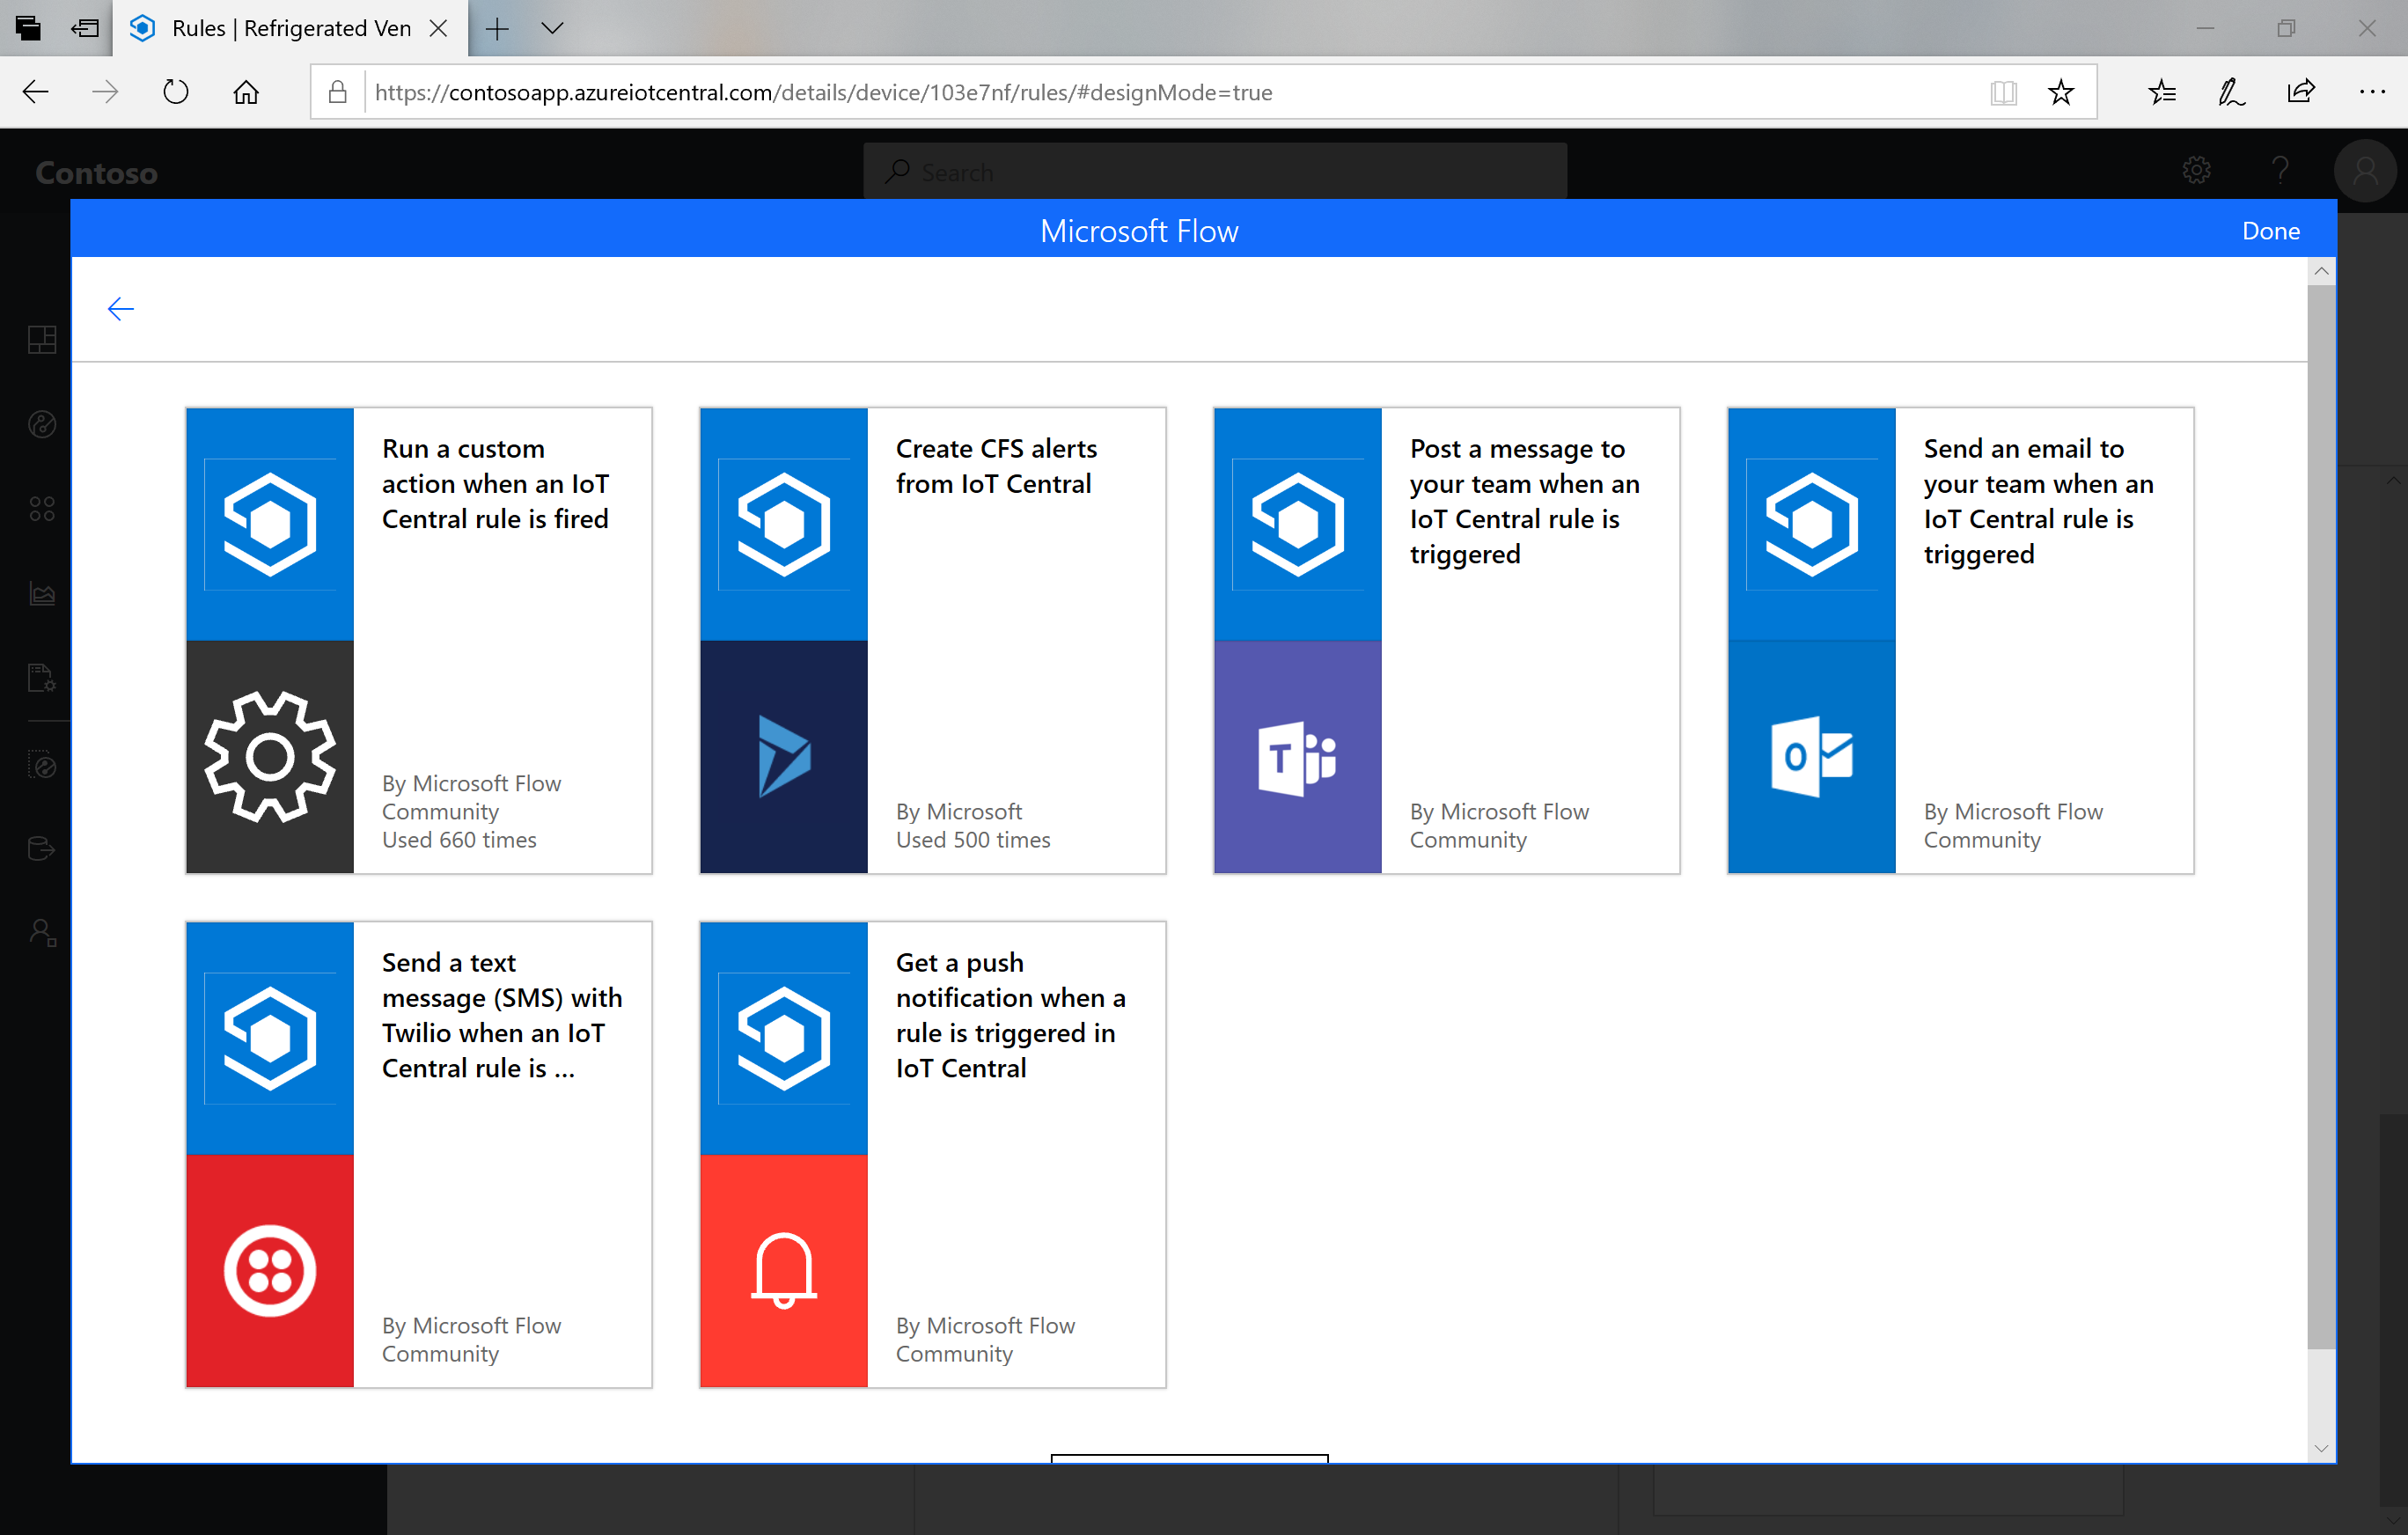 Available Microsoft Flow templates